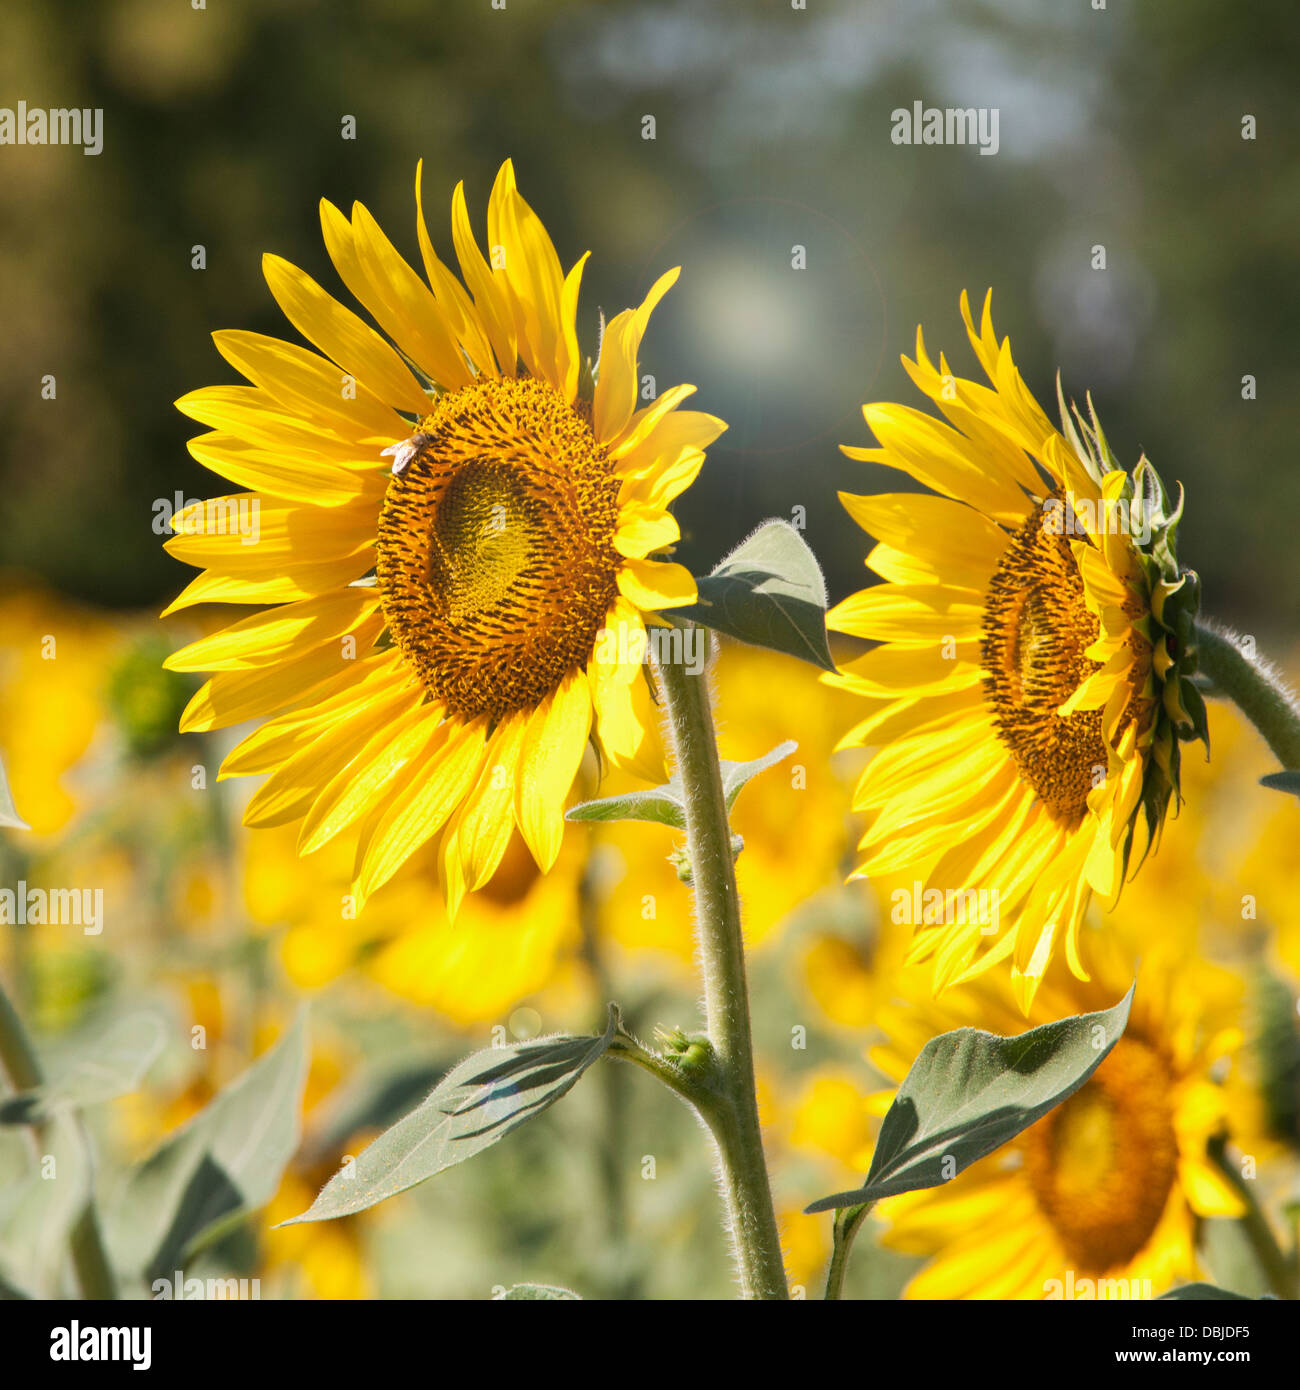 Two sunflowers in a field of sunflowers - Stock Image